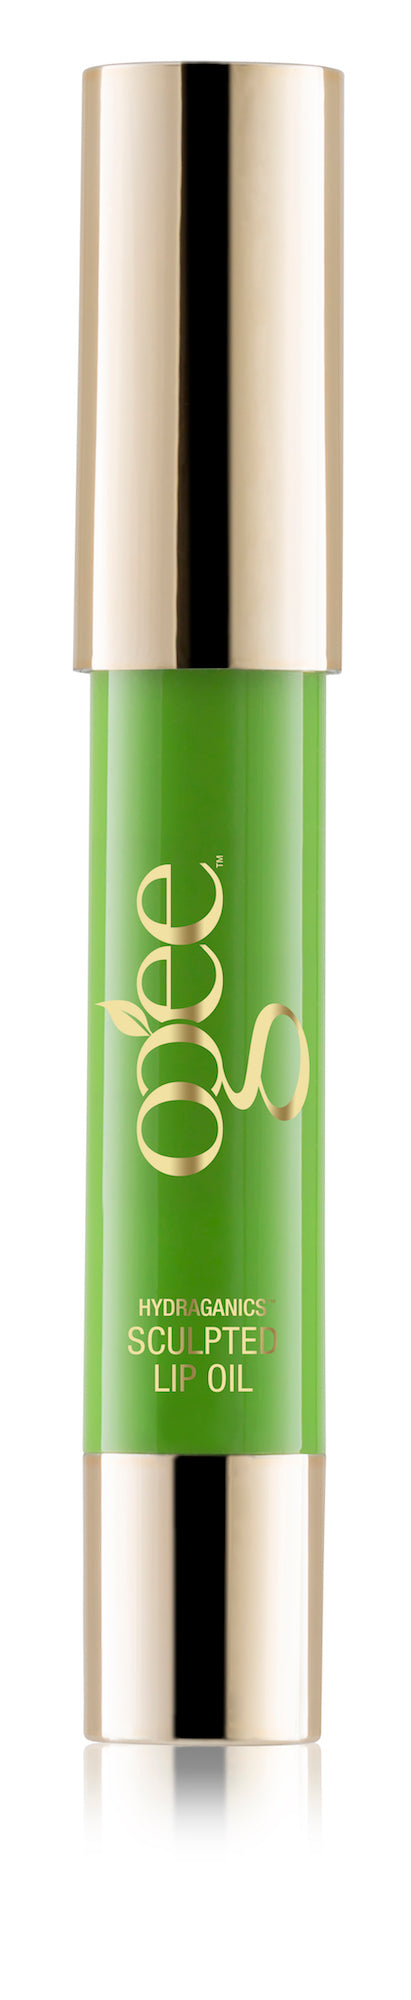 Ogee - Sculpted Lip Oil